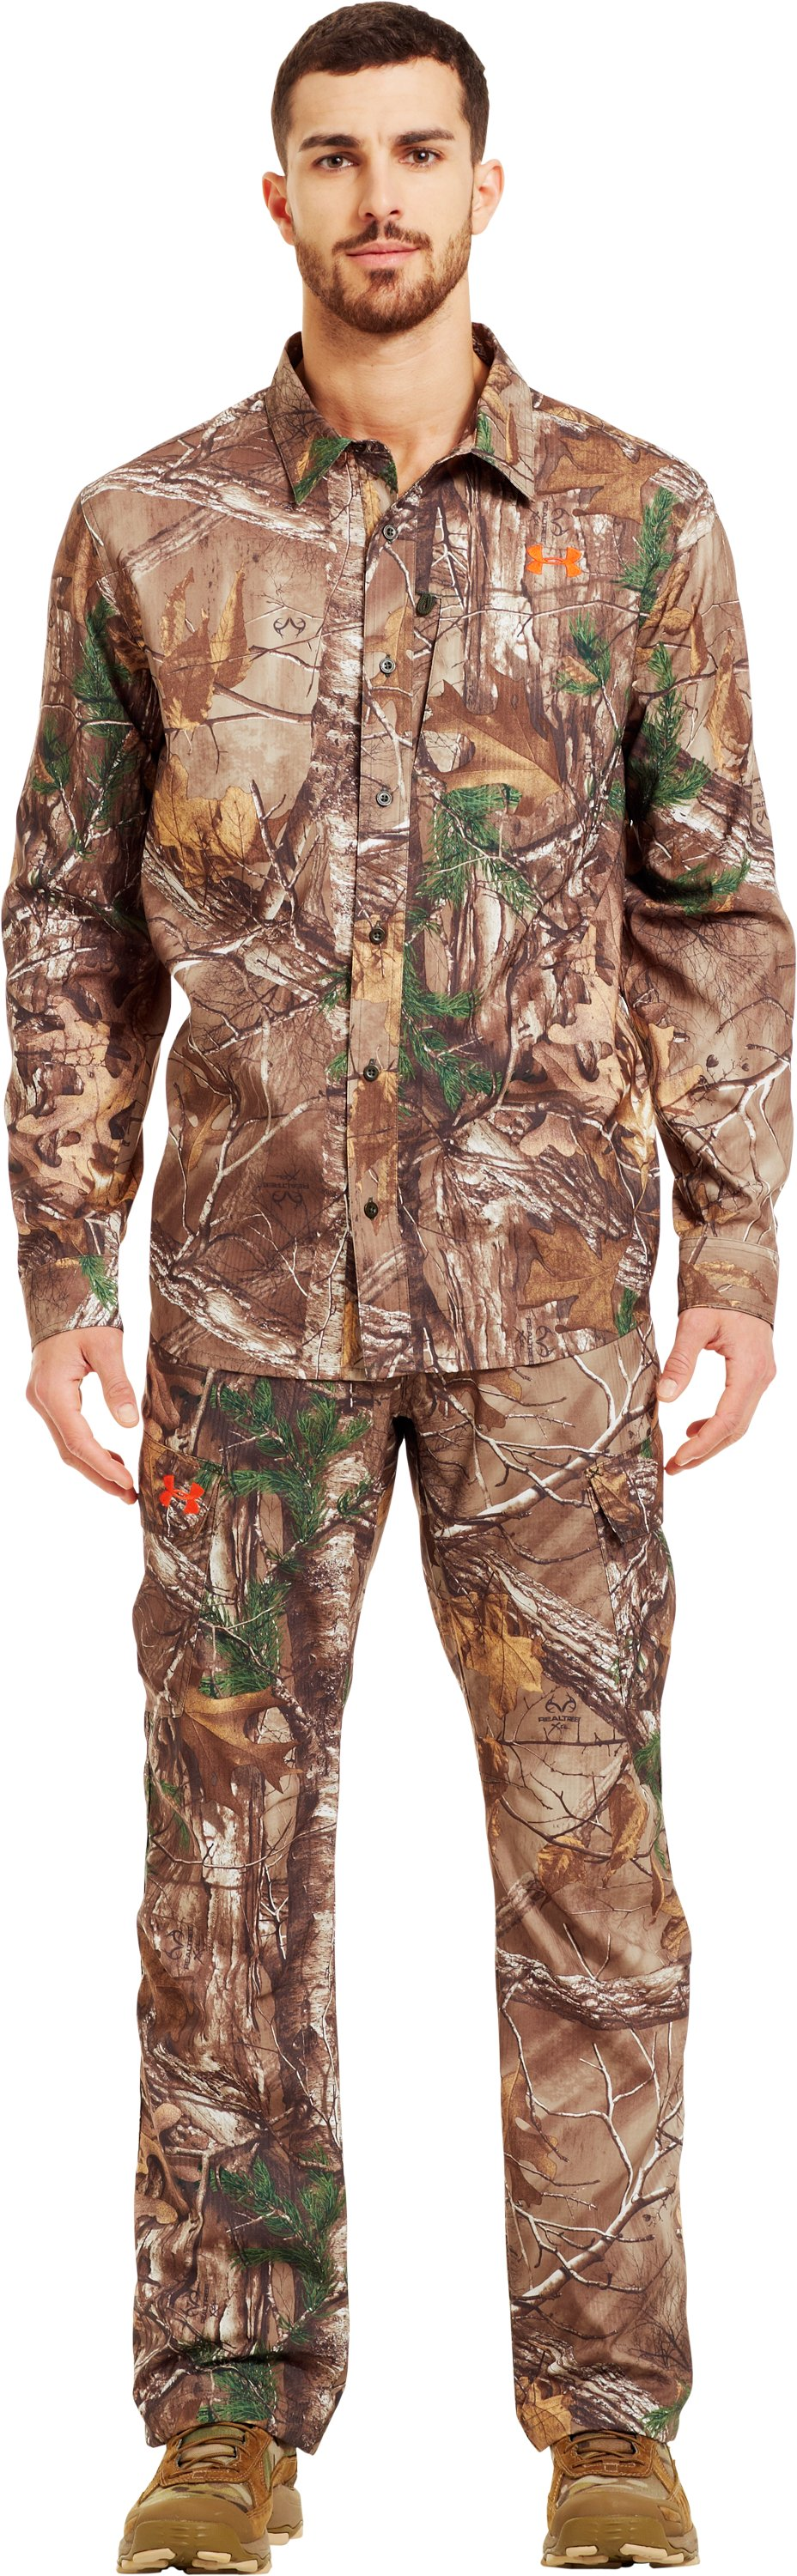 Men's UA Performance Field Shirt, REALTREE AP-XTRA, Front